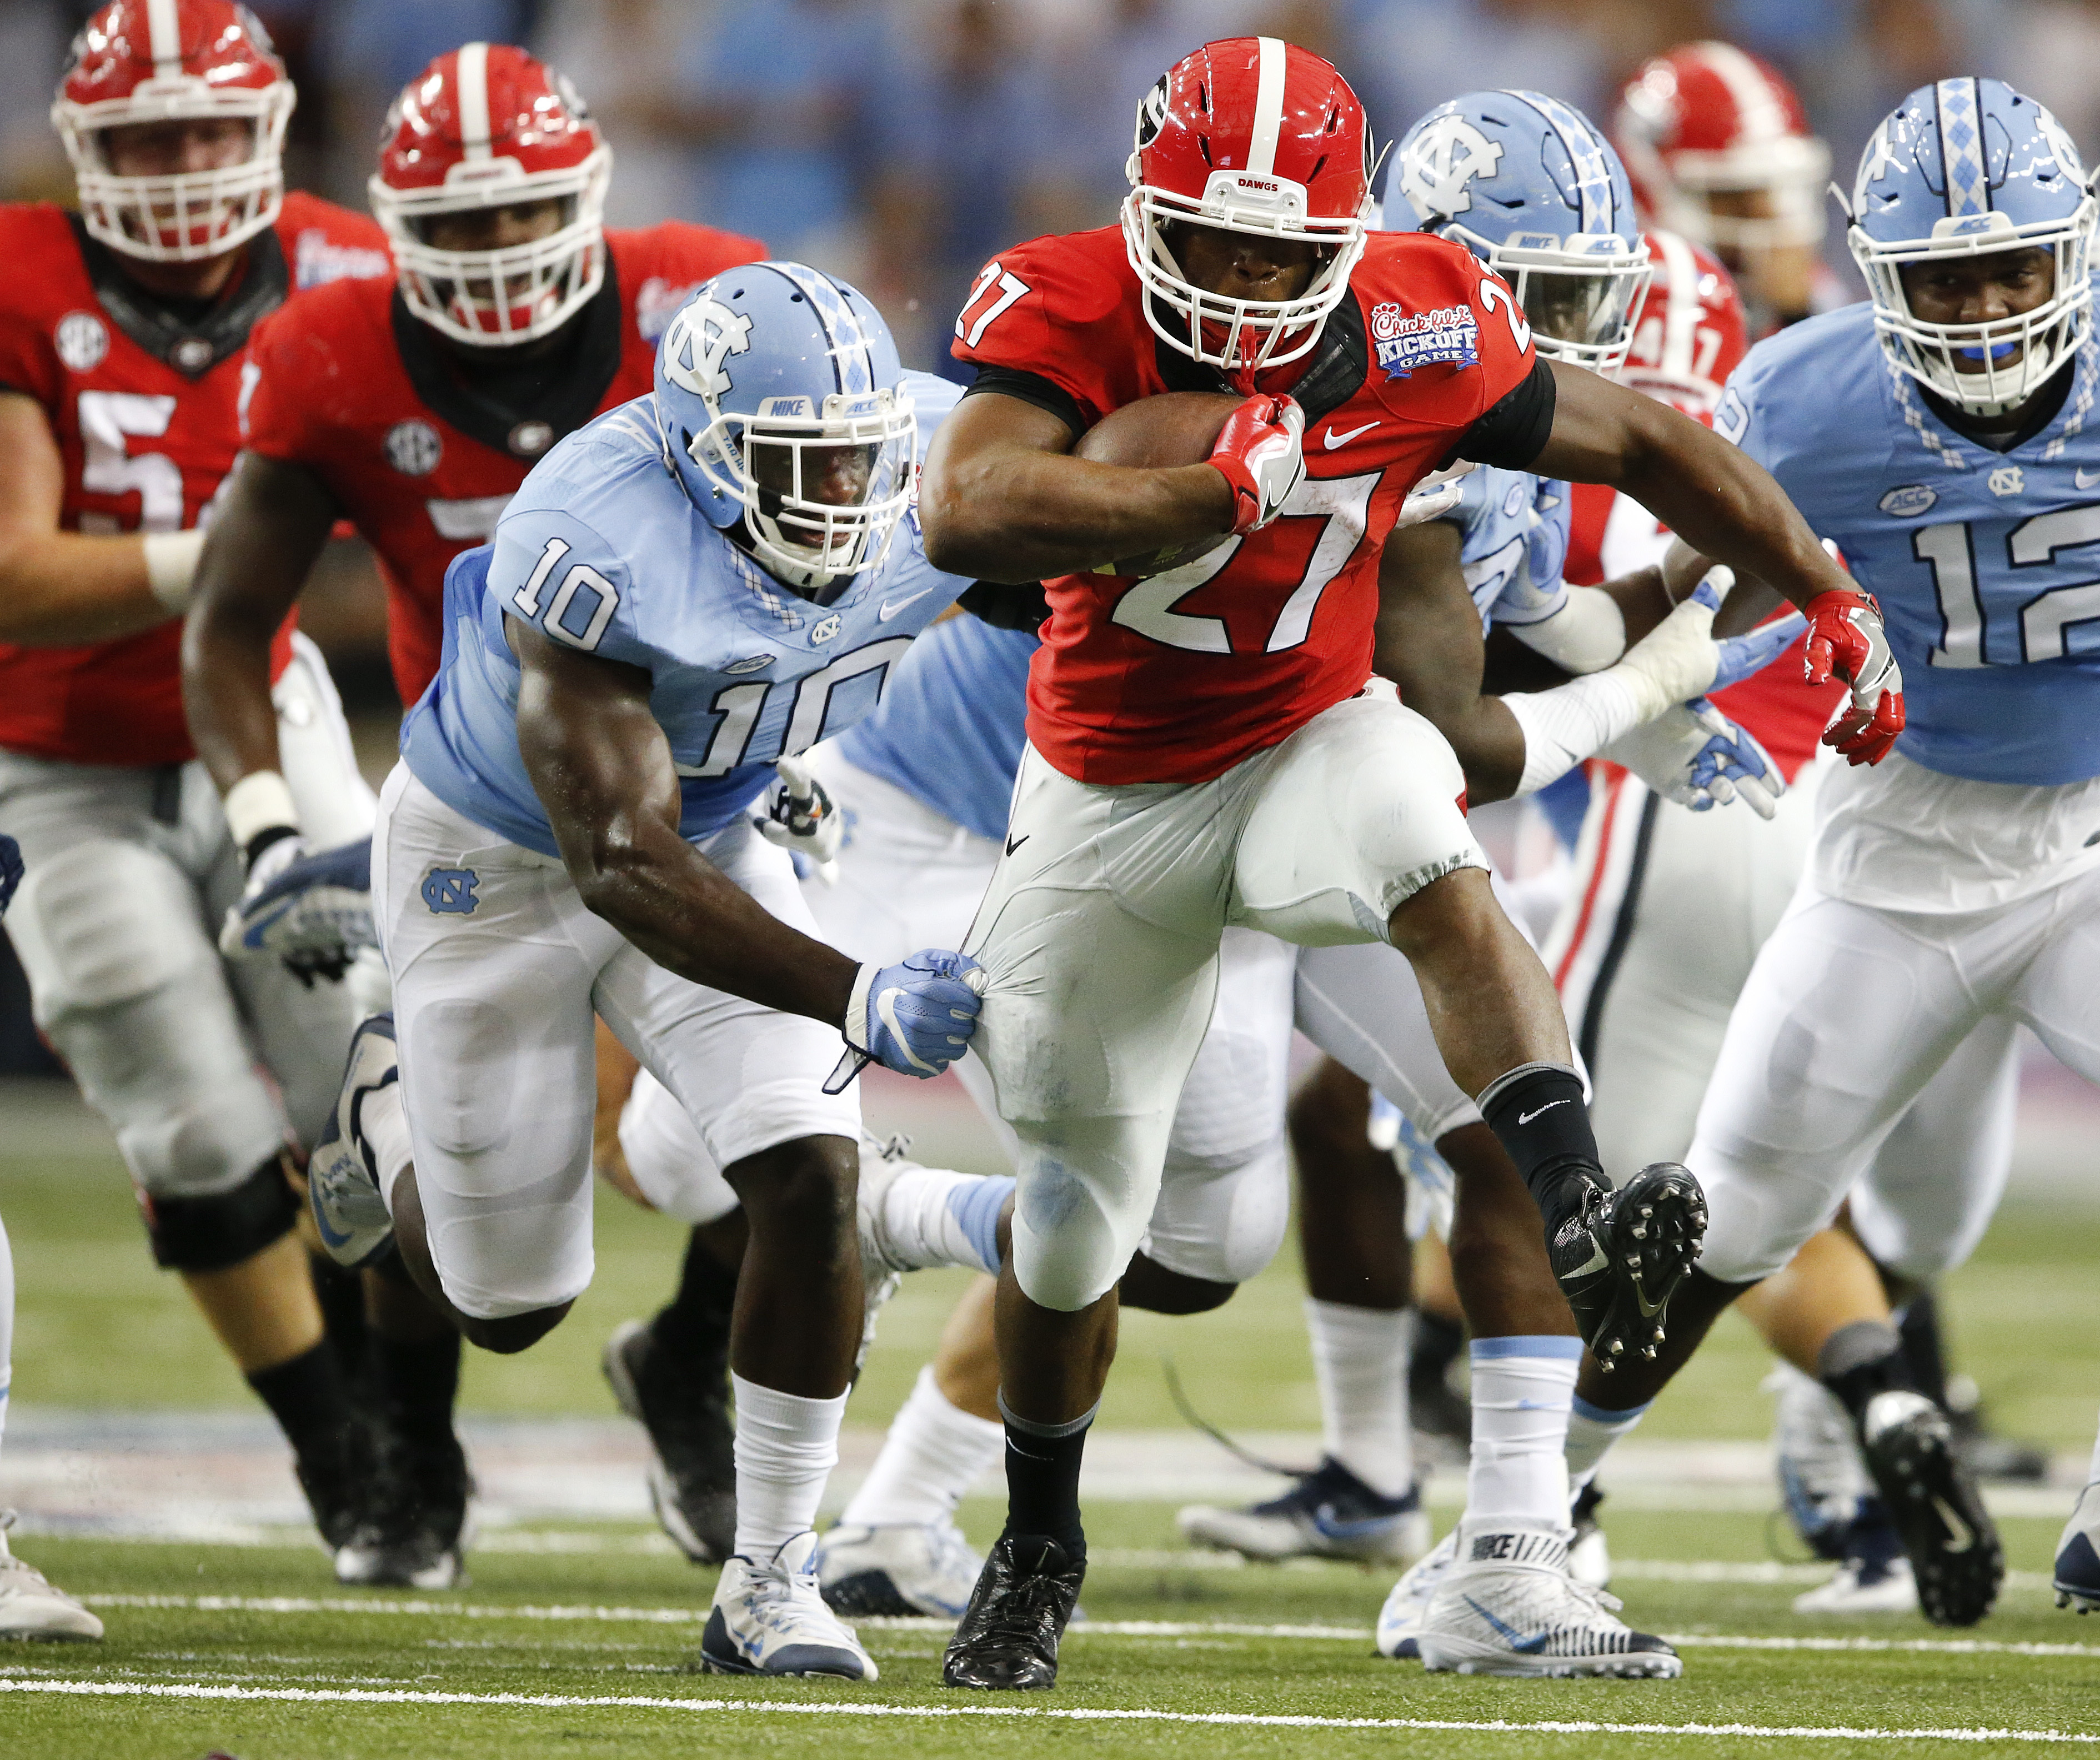 Georgia running back Nick Chubb (27) tries to breaks away from North Carolina linebacker Andre Smith (10) in the first of an NCAA college football game against North Carolina in Atlanta, Saturday, Sept. 3, 2016. Chubb missed most of last season with a kne